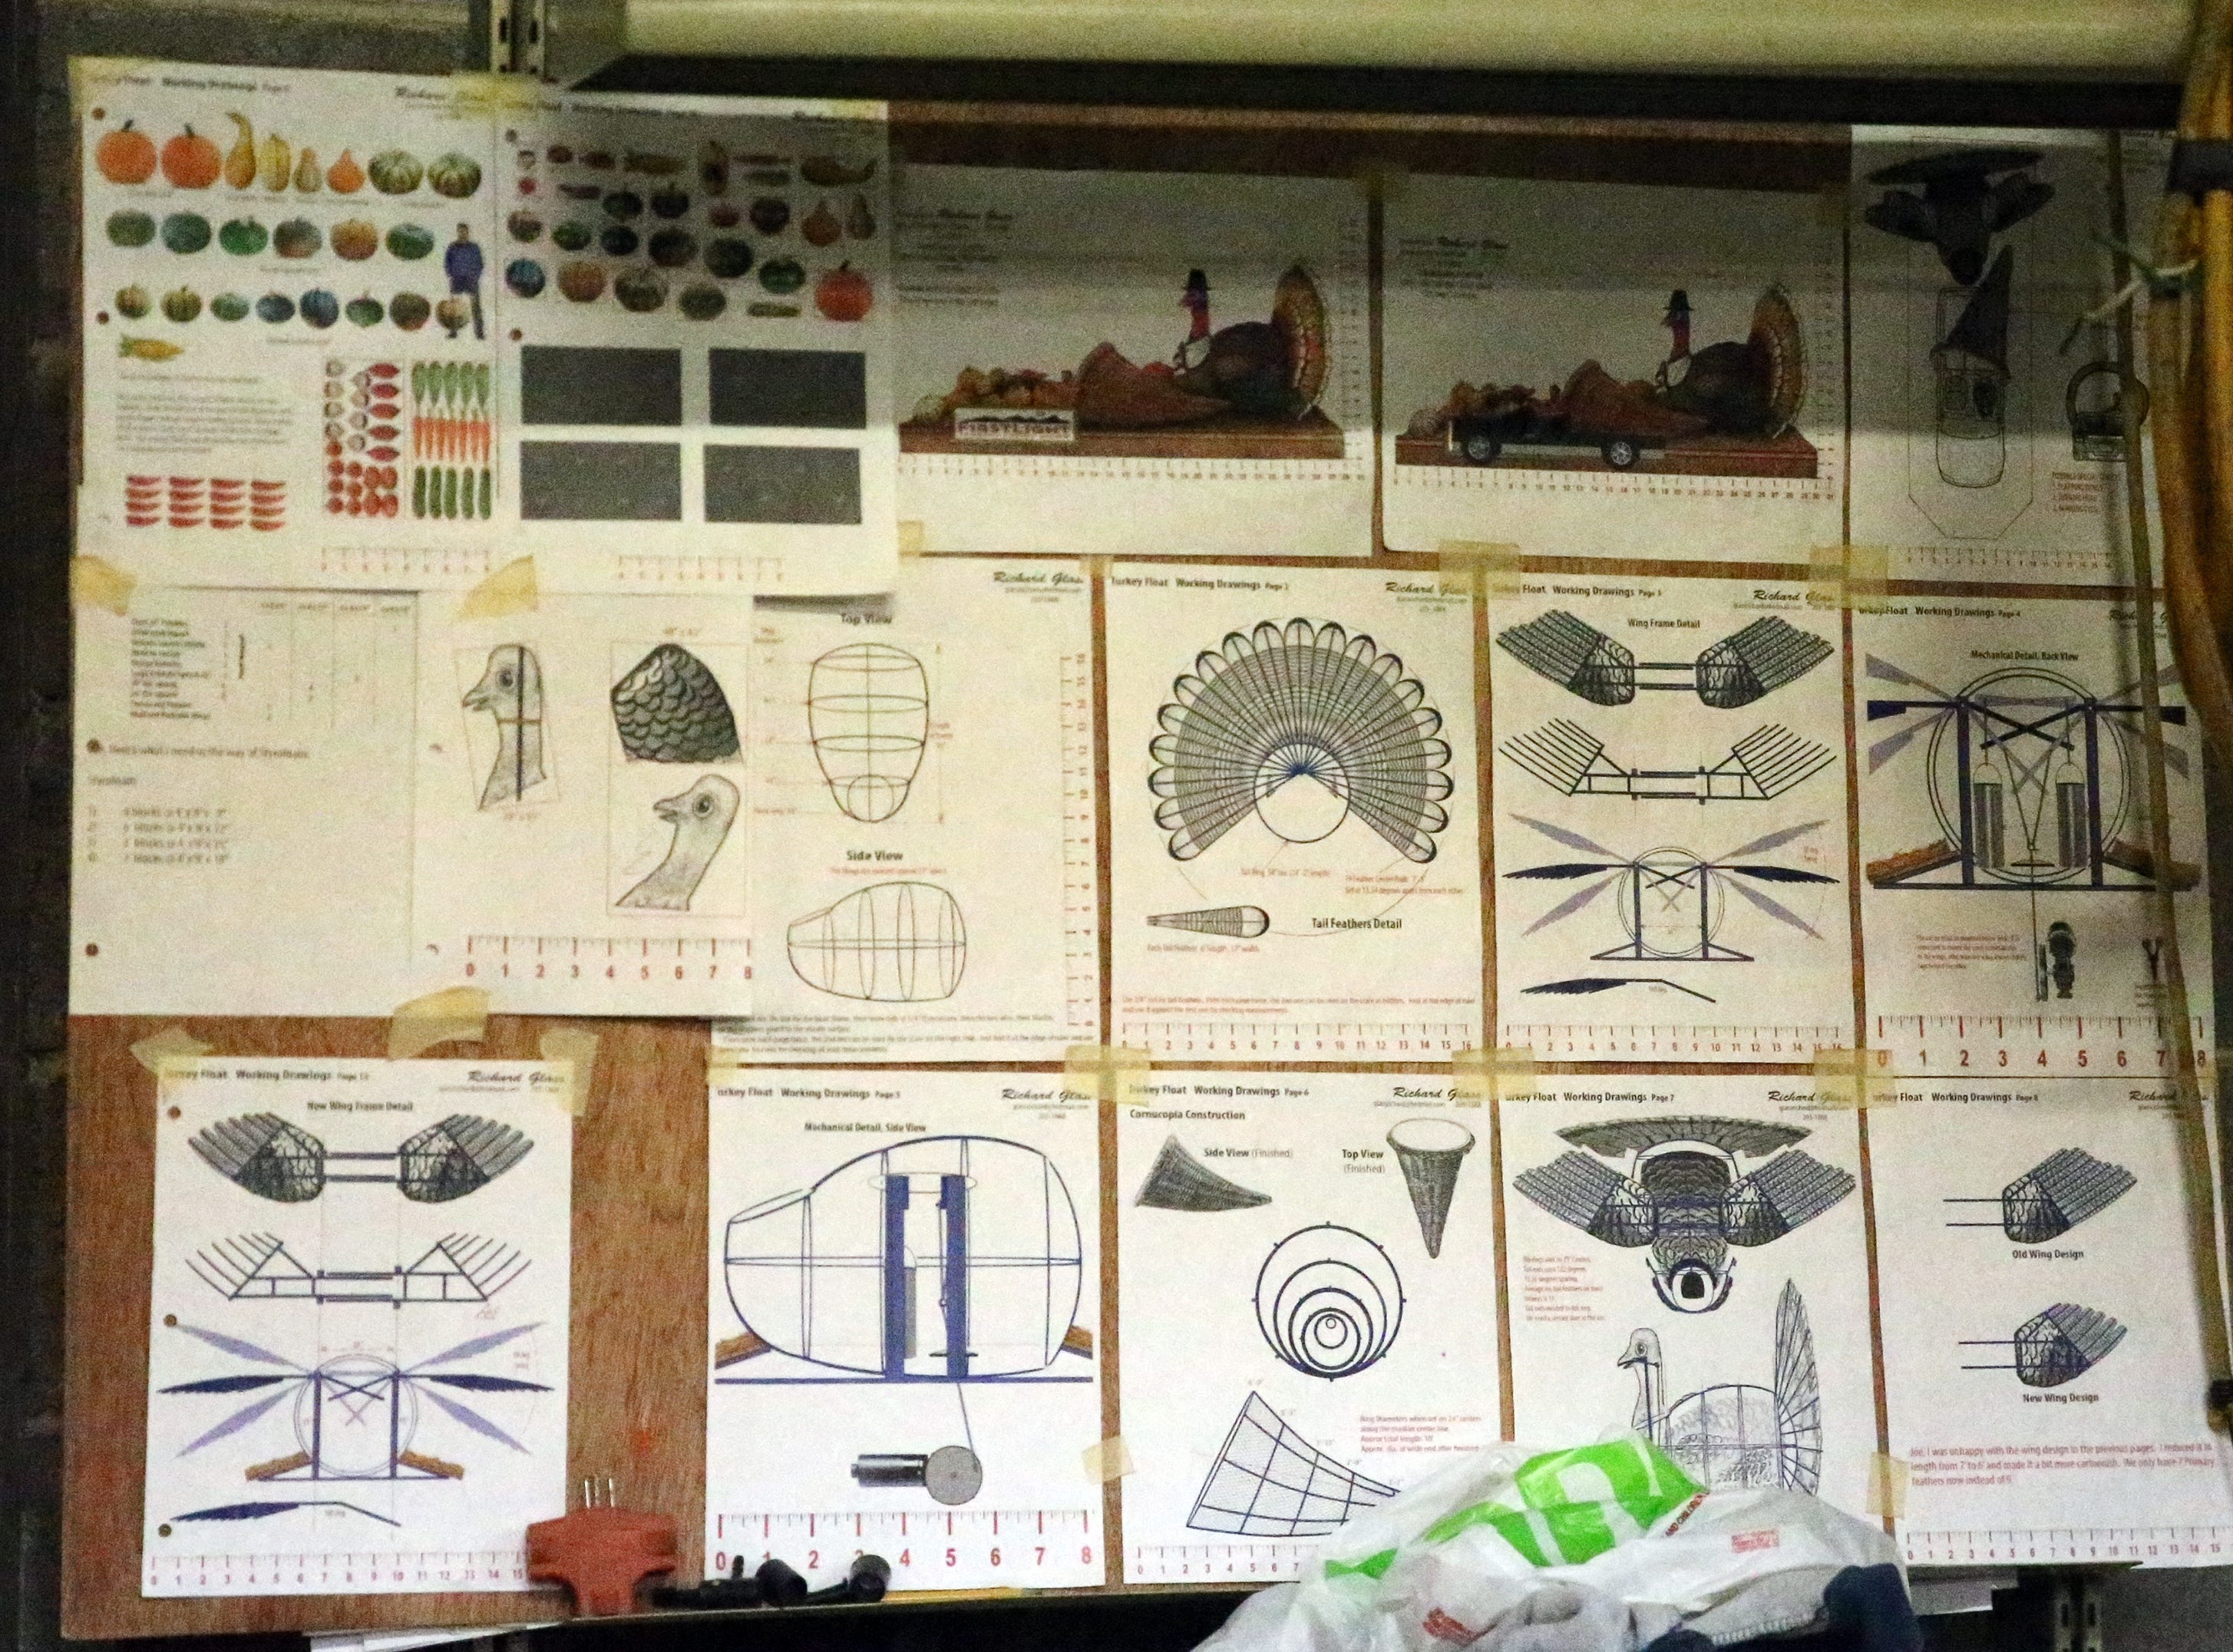 Design plans for the FirstLight Federal Credit Union turkey float.